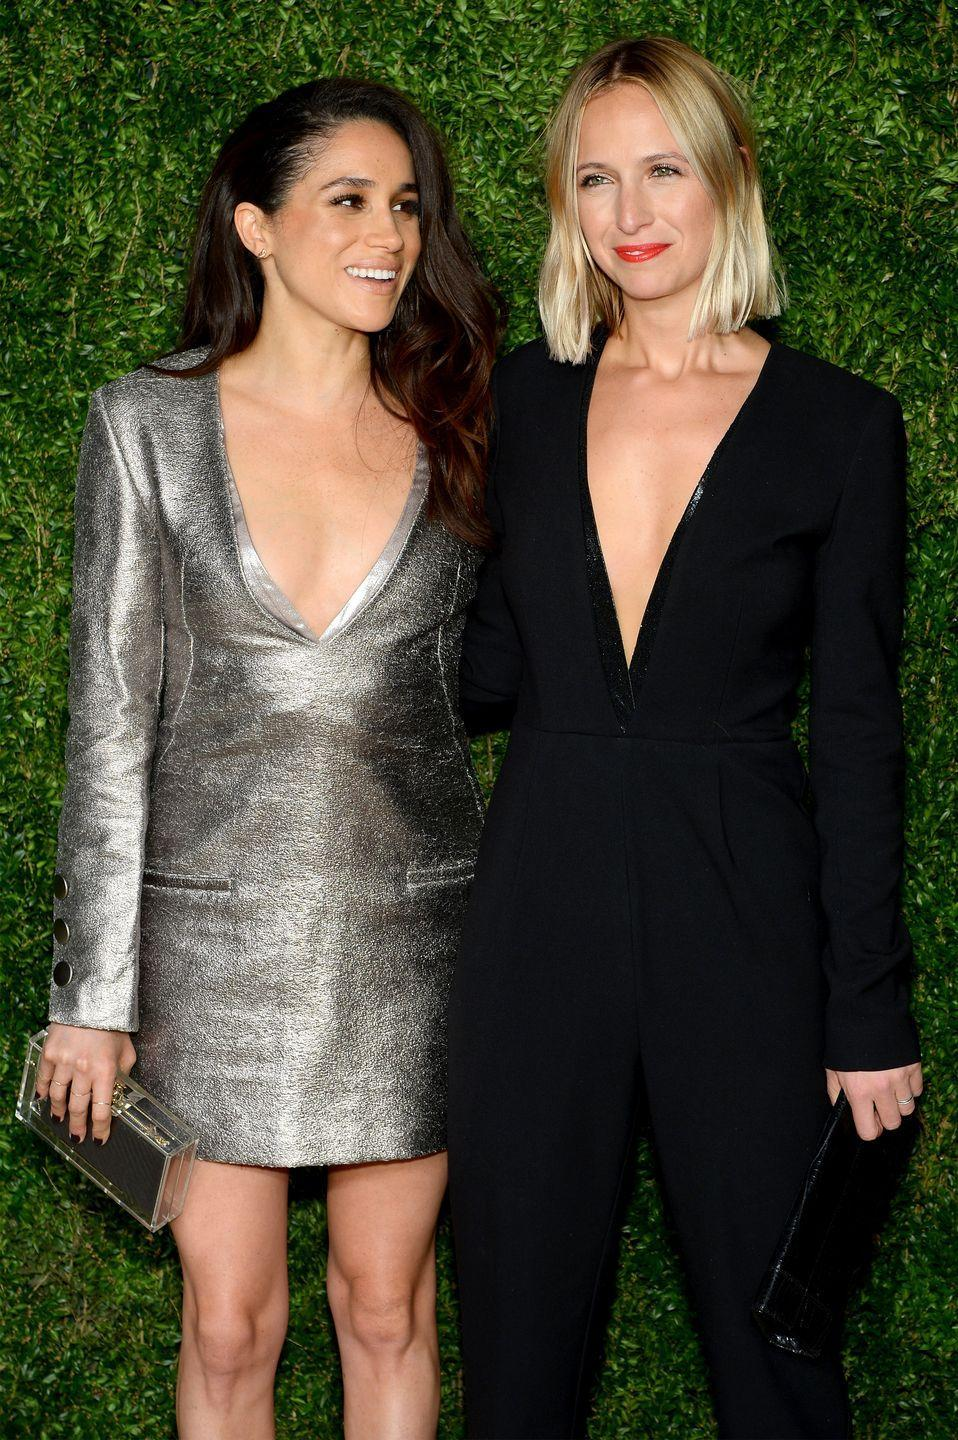 """<p>Another friend that could be responsible for Meghan and Harry's whirlwind romance is fashion designer Misha Nonoo. She, too, was part of Meghan's first debut with Harry. During the couple's first official public appearance, Meghan wore a white button-down from the designer. While Misha hasn't weighed in on speculation that she introduced the pair, she told the <em><a href=""""https://www.nytimes.com/2019/09/12/style/misha-nonoo-meghan-markle.html"""" rel=""""nofollow noopener"""" target=""""_blank"""" data-ylk=""""slk:New York Times"""" class=""""link rapid-noclick-resp"""">New York Times</a> </em>last September that Meghan is """"the most generous, the most genuine person, such a sister in the sense that, you know, if you're her friend, she'll do anything for you."""" The friends also collaborated on Meghan's recent <a href=""""https://www.elle.com/culture/celebrities/a29085695/meghan-markle-smart-works-collection-shoot-photos/"""" rel=""""nofollow noopener"""" target=""""_blank"""" data-ylk=""""slk:Smart Works"""" class=""""link rapid-noclick-resp"""">Smart Works</a> capsule collection. </p>"""